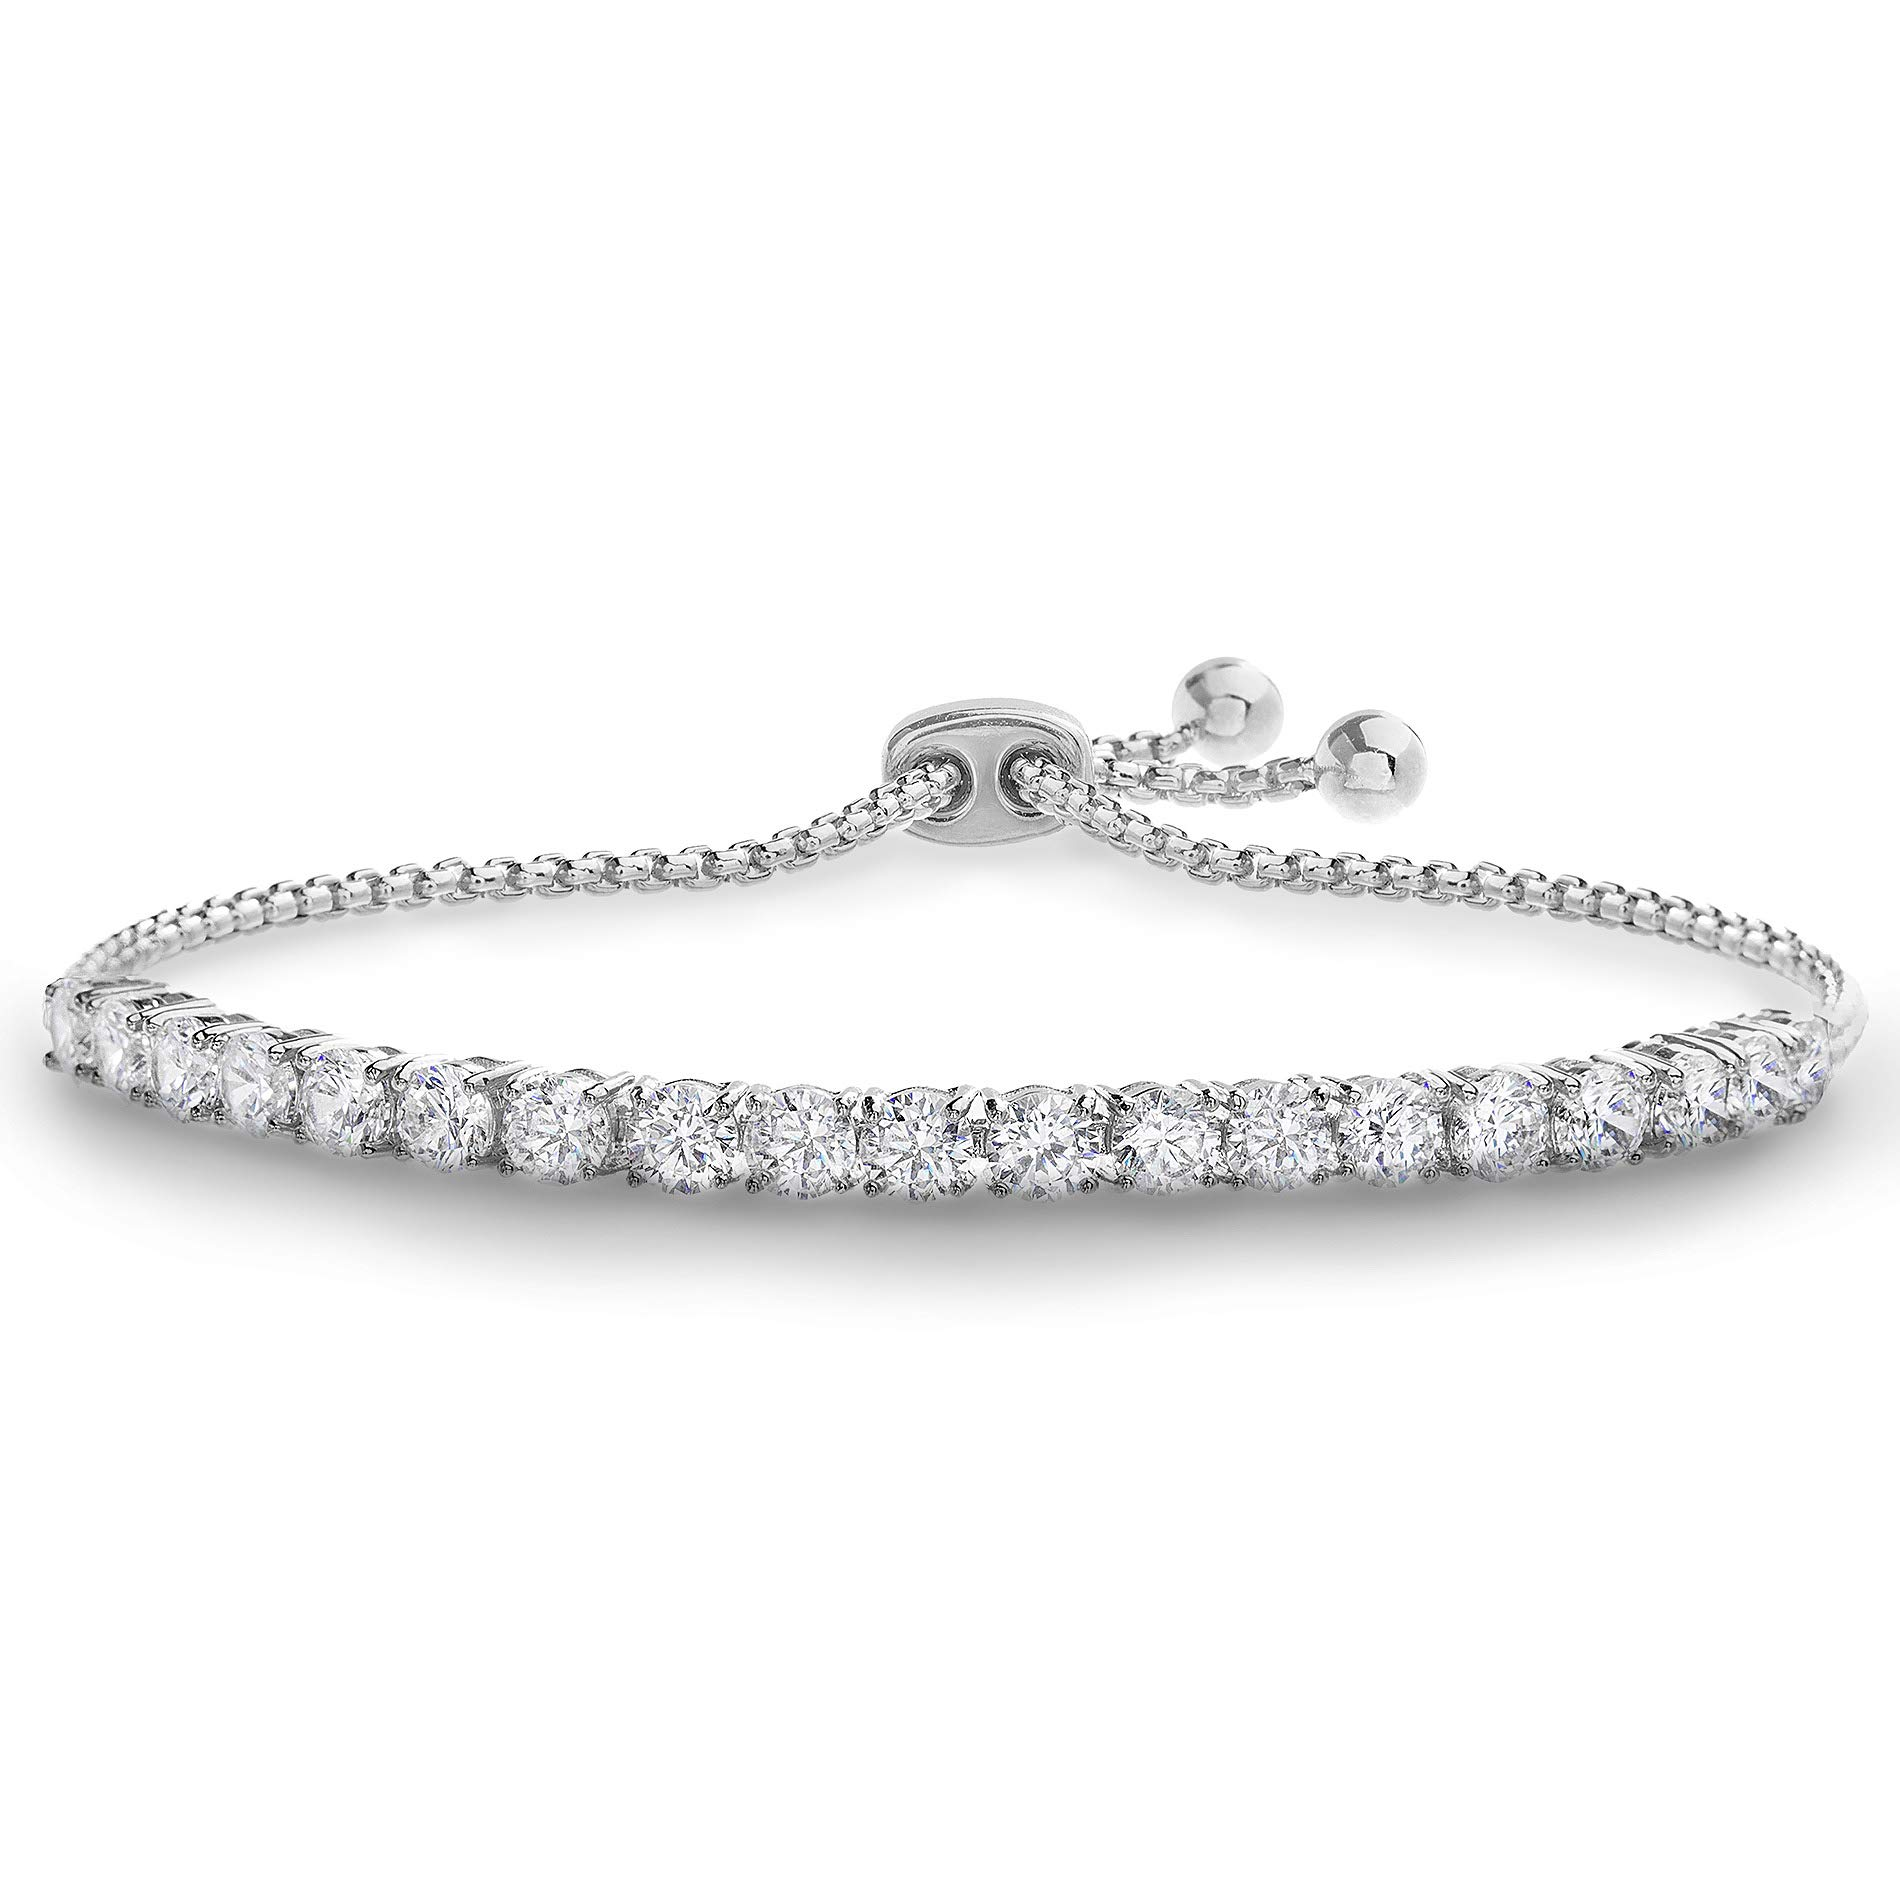 Devin Rose 8 Cttw Cubic Zirconia Adjustable Bolo Bracelet for Women in Rhodium Plated Brass (4mm White) by Devin Rose